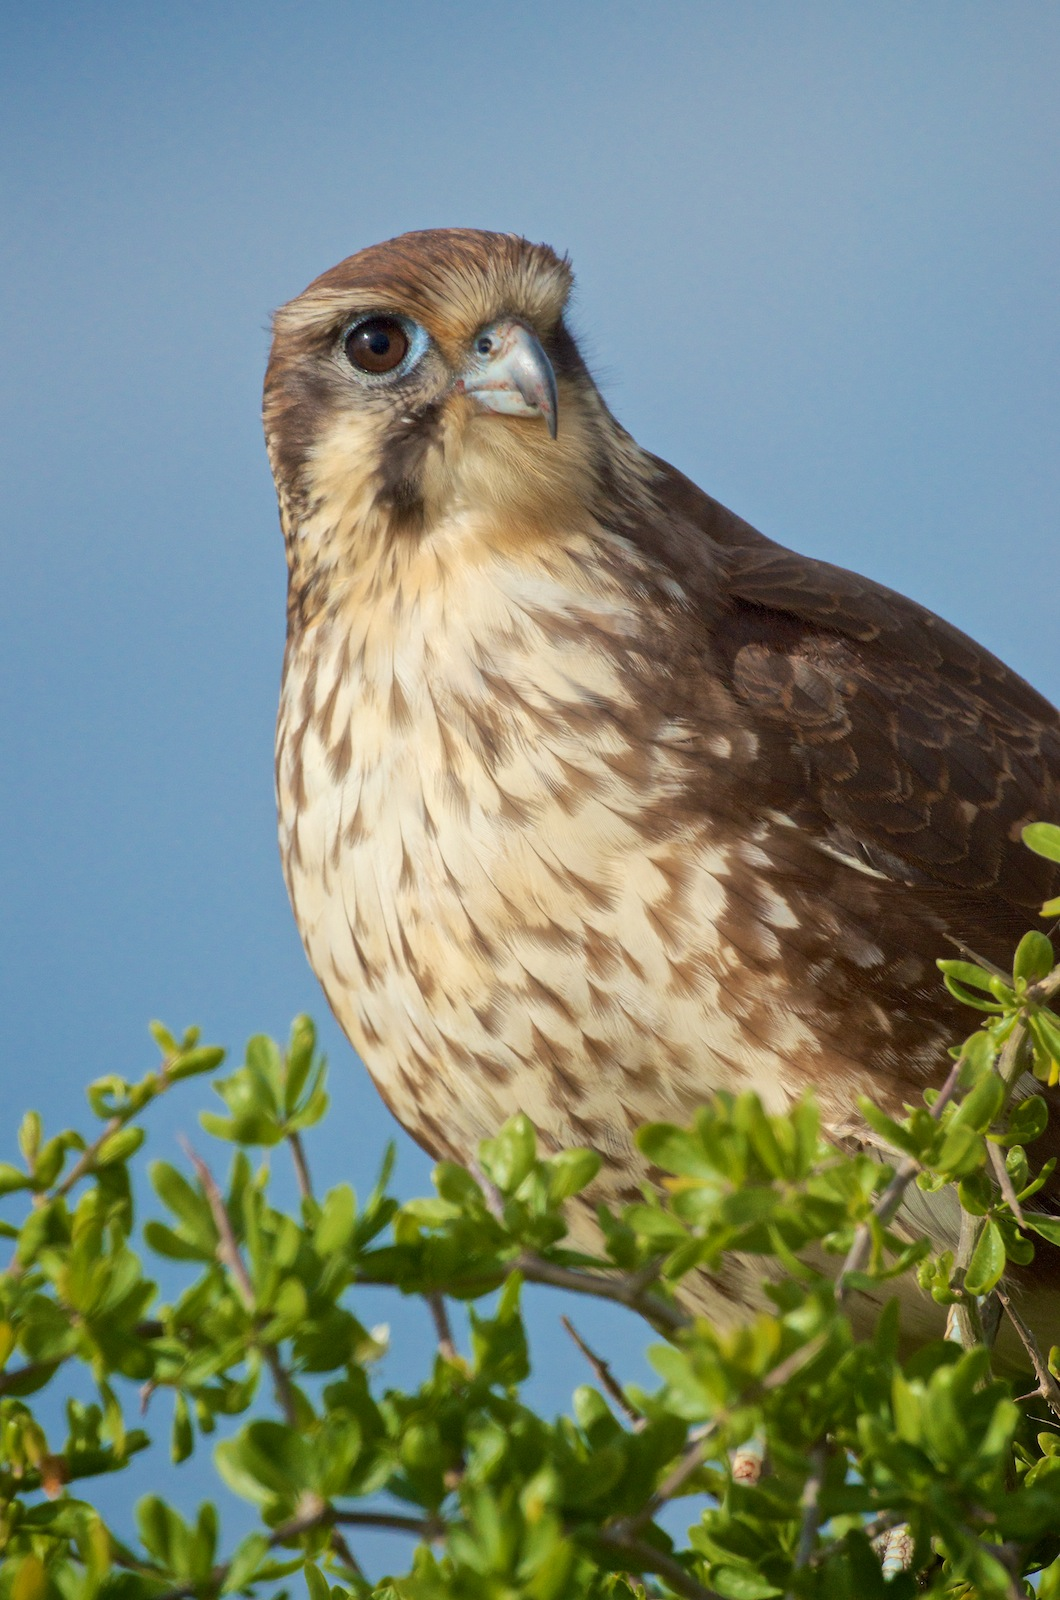 This Brown Falcon was hardly camera shy. We think he might be Elvis in disguise.